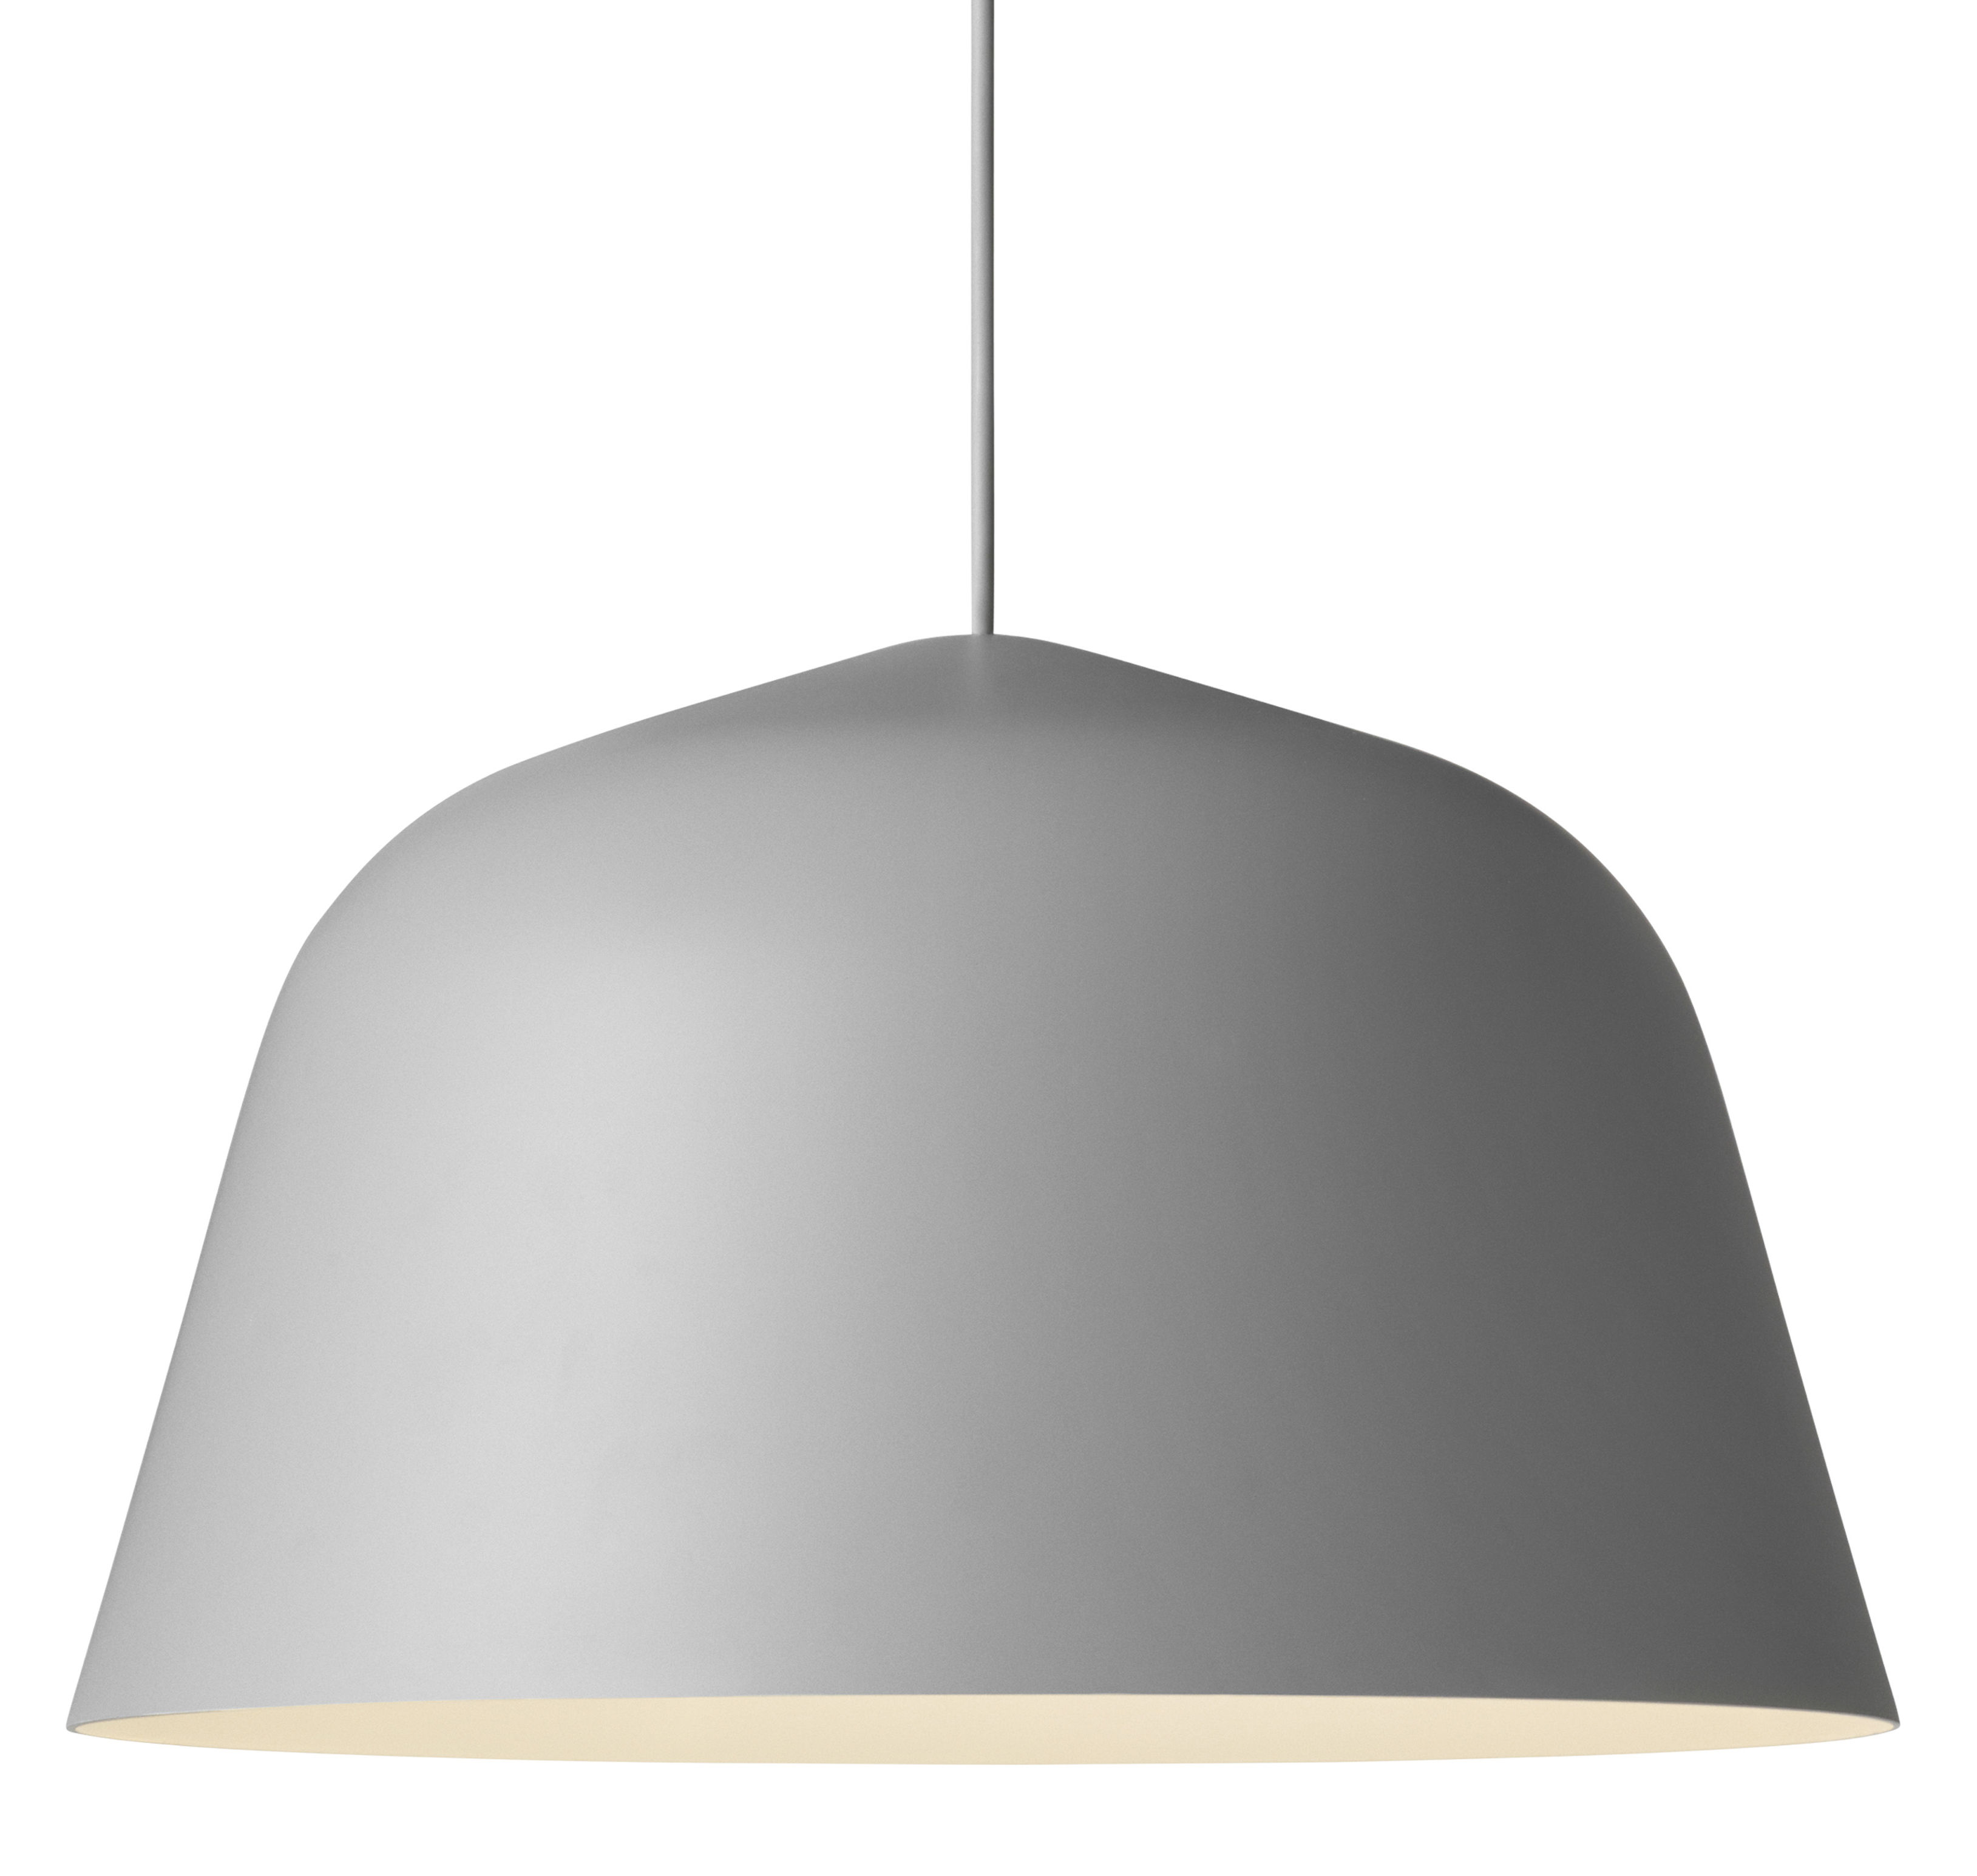 Lighting - Pendant Lighting - Ambit Pendant - Ø 40 cm by Muuto - Light grey - Aluminium